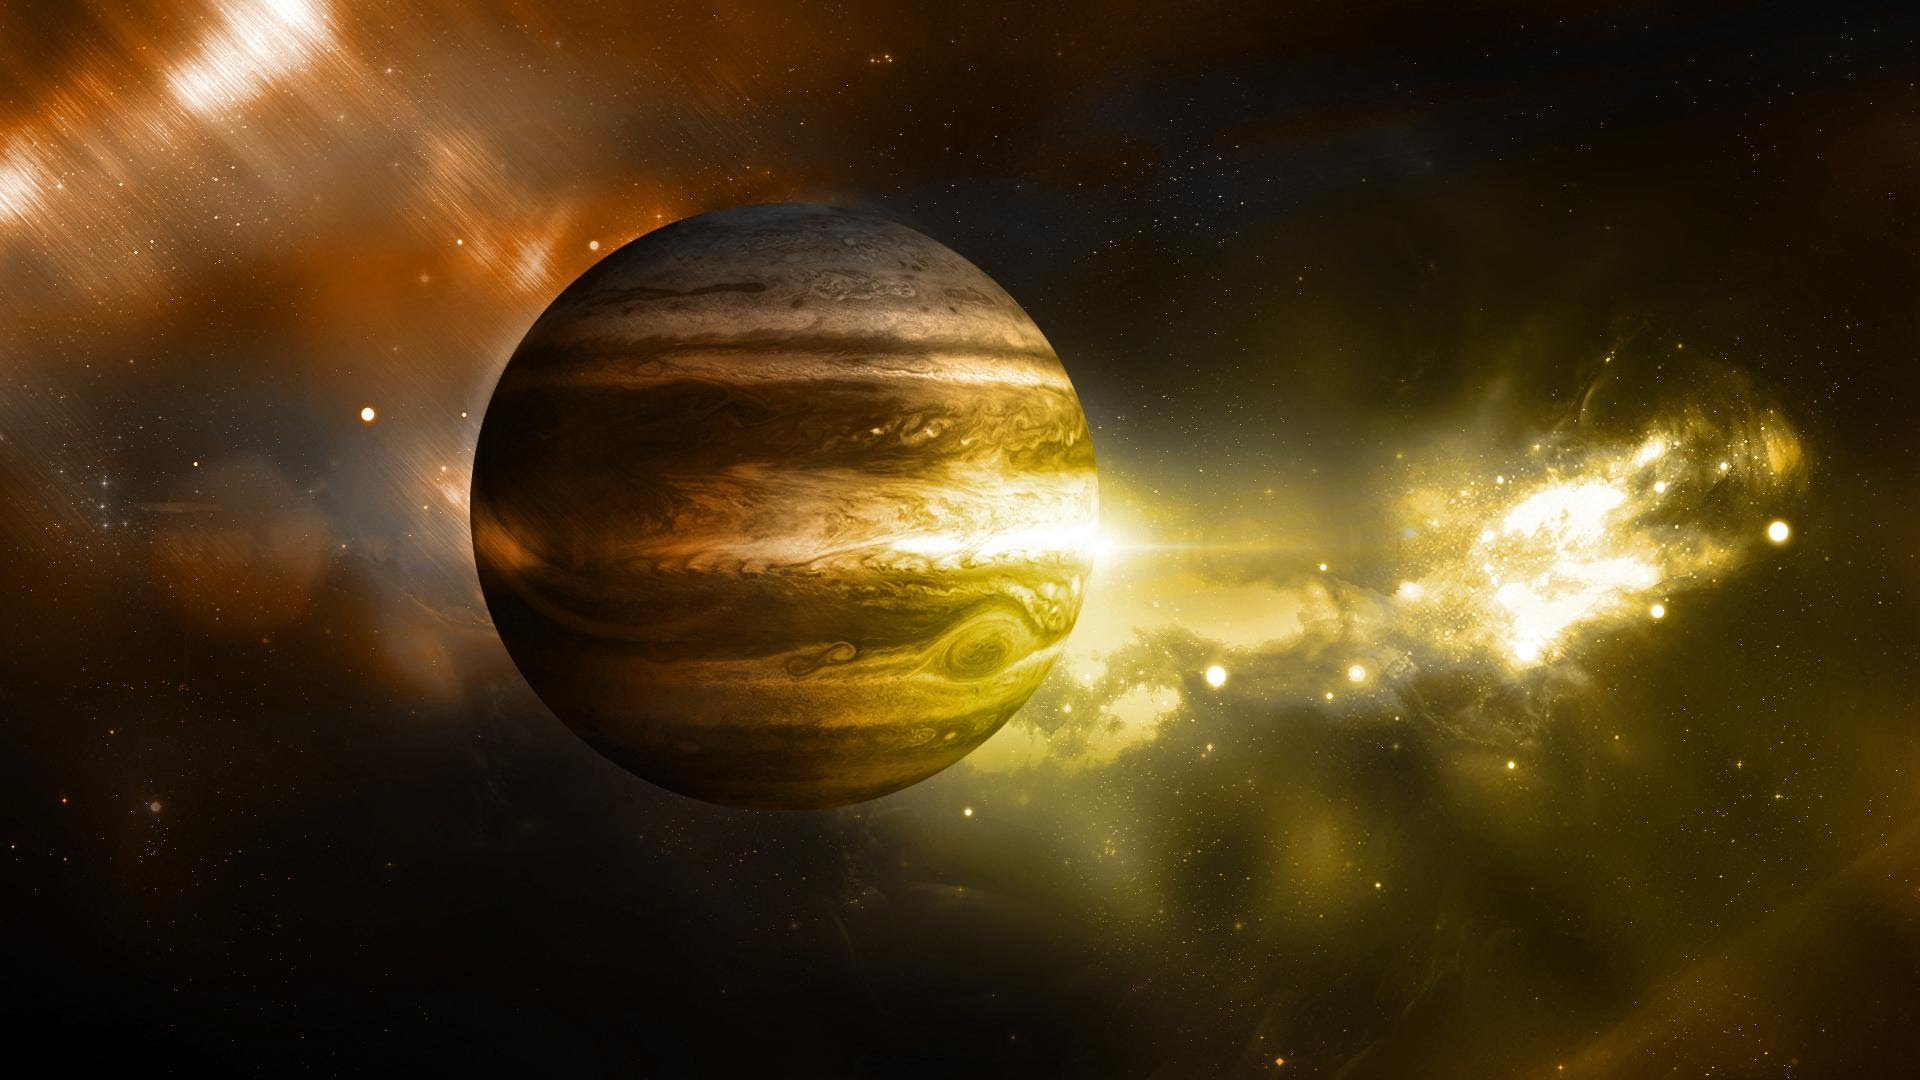 jupiter planet images - HD 1920×1080